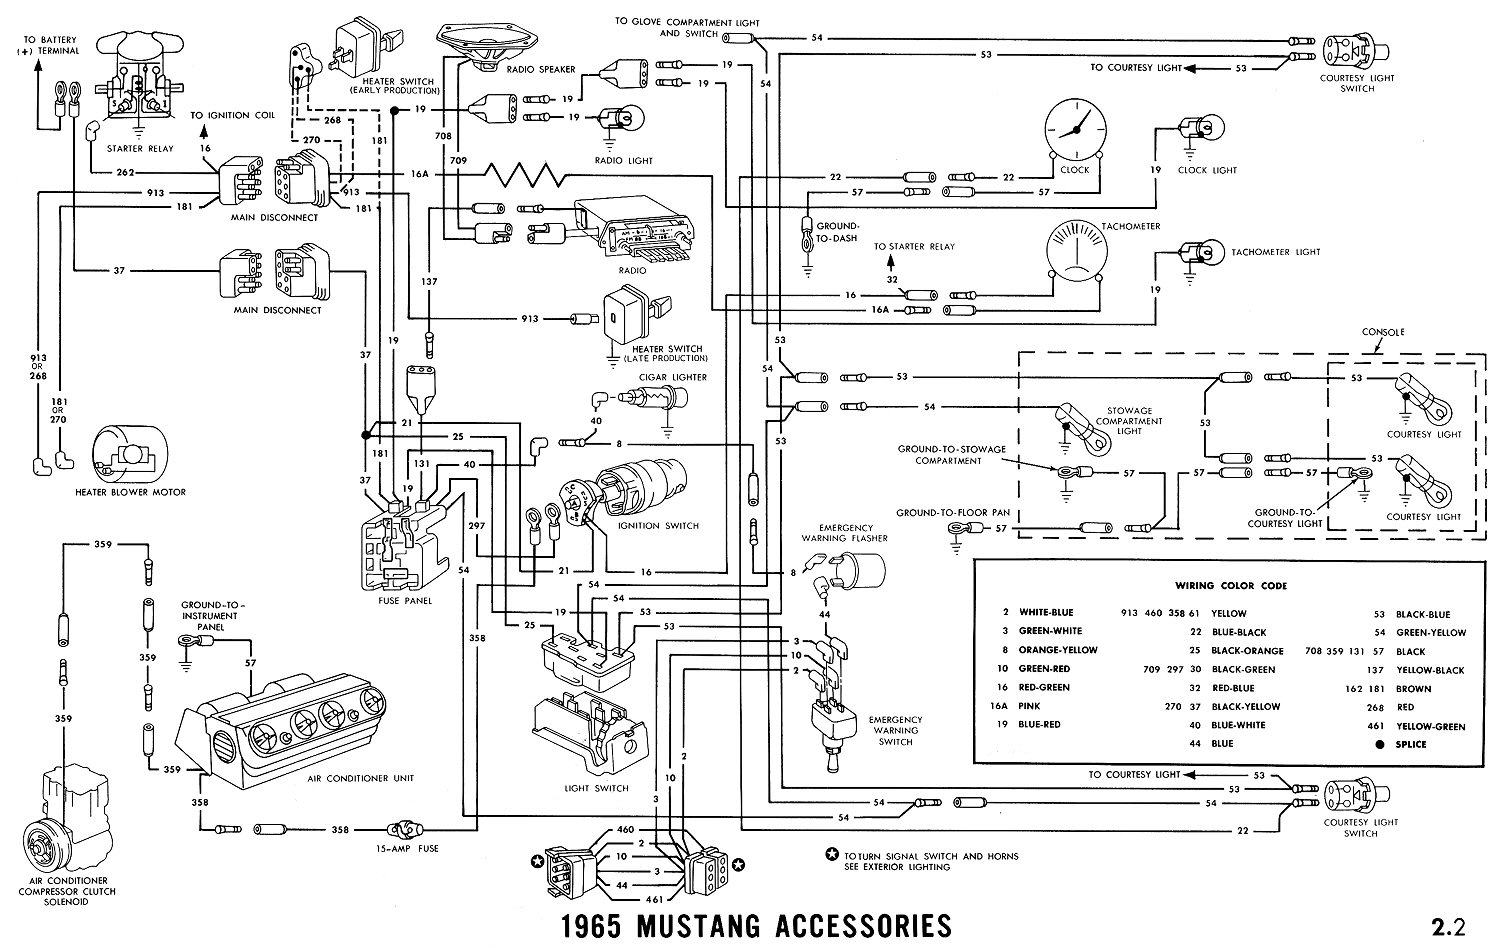 1965 Mustang Under Dash Wiring Diagram Just Data 67 Corvette Headlight Motor Diagrams Average Joe Restoration 1969 Accessories Pictorial